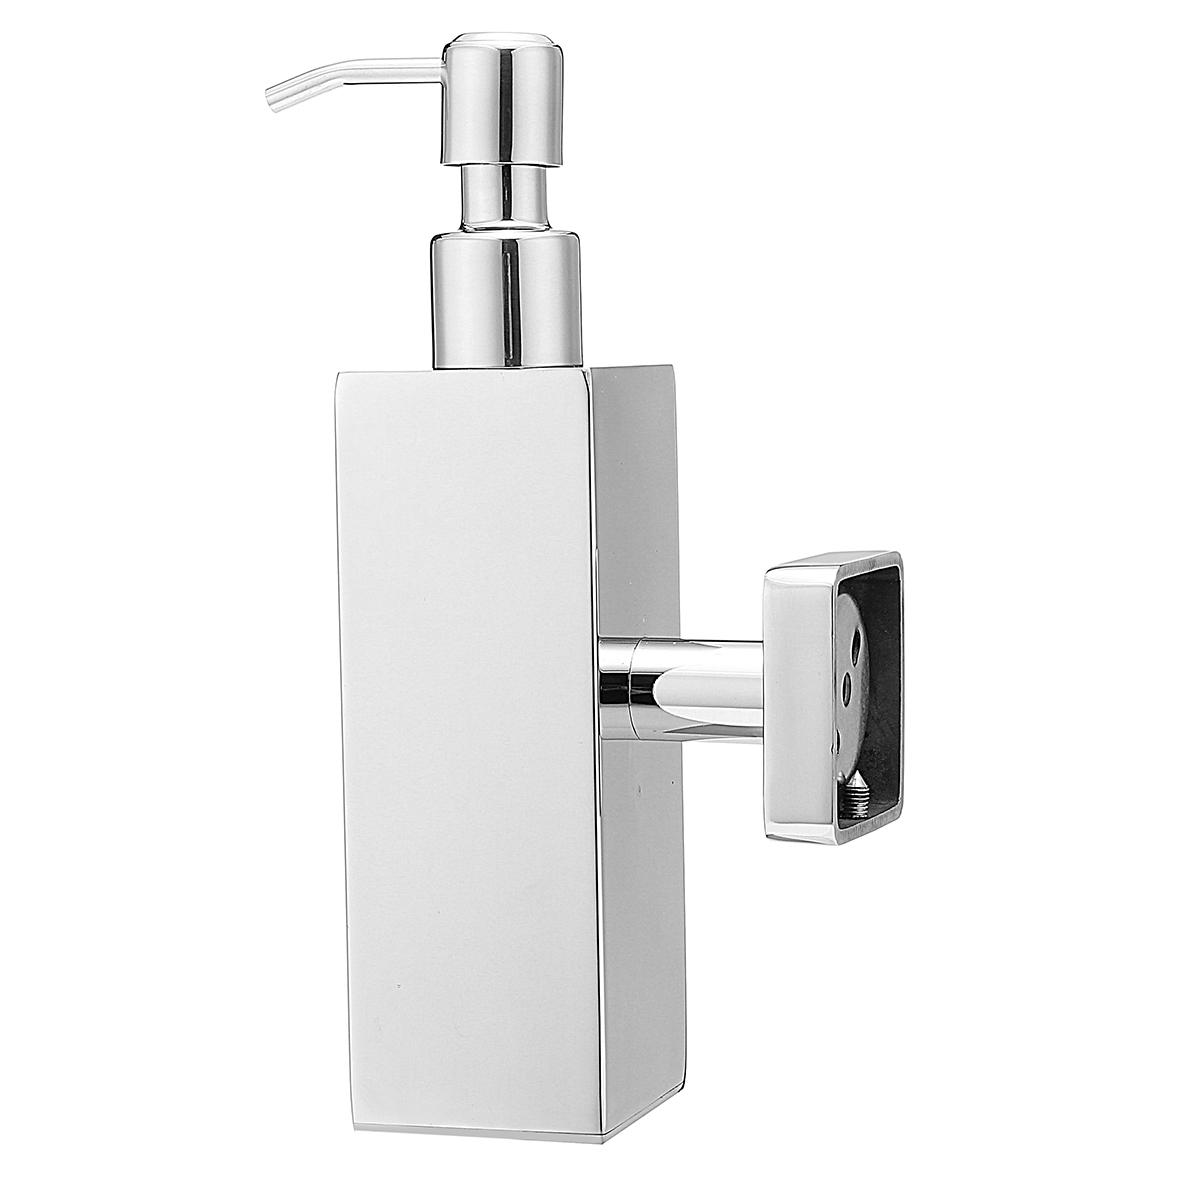 Unique Hand Soap Dispenser Stainless Steel Hand Soap Dispenser Liquid Bottle Holder Wall Mounted Bathroom Storage